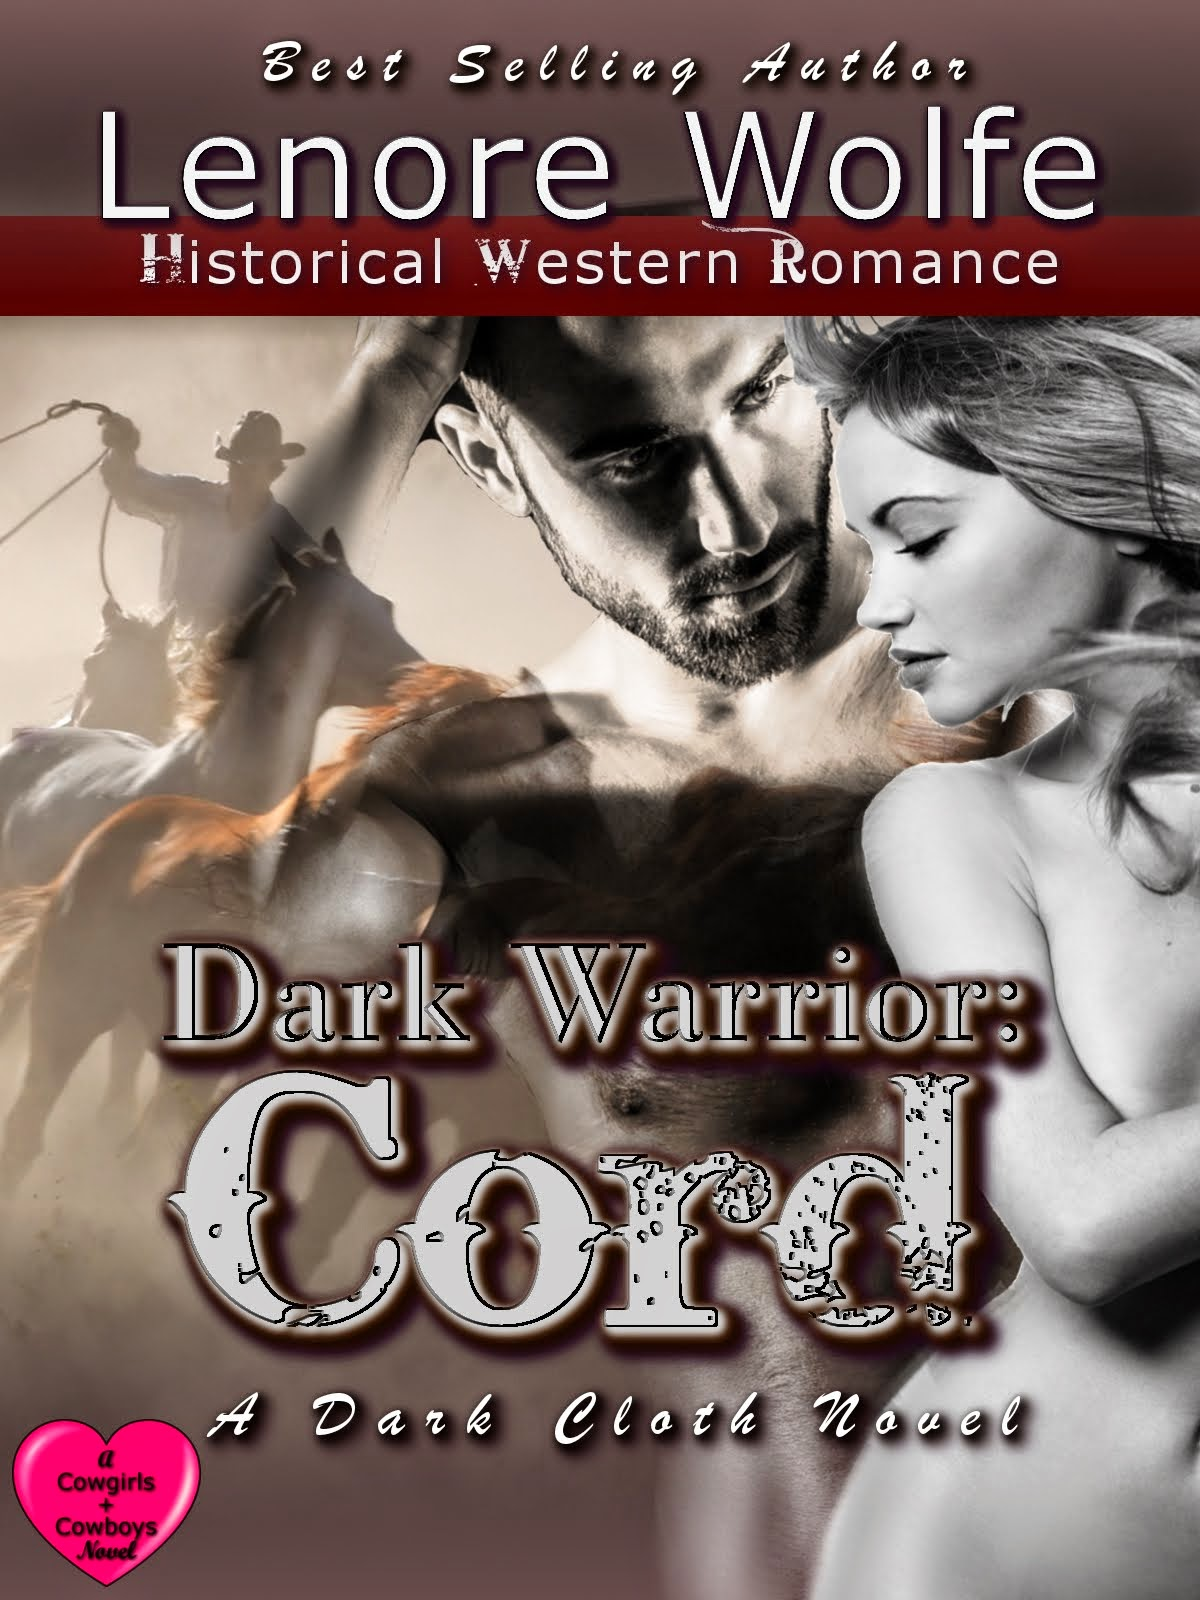 Dark Warrior: CORD